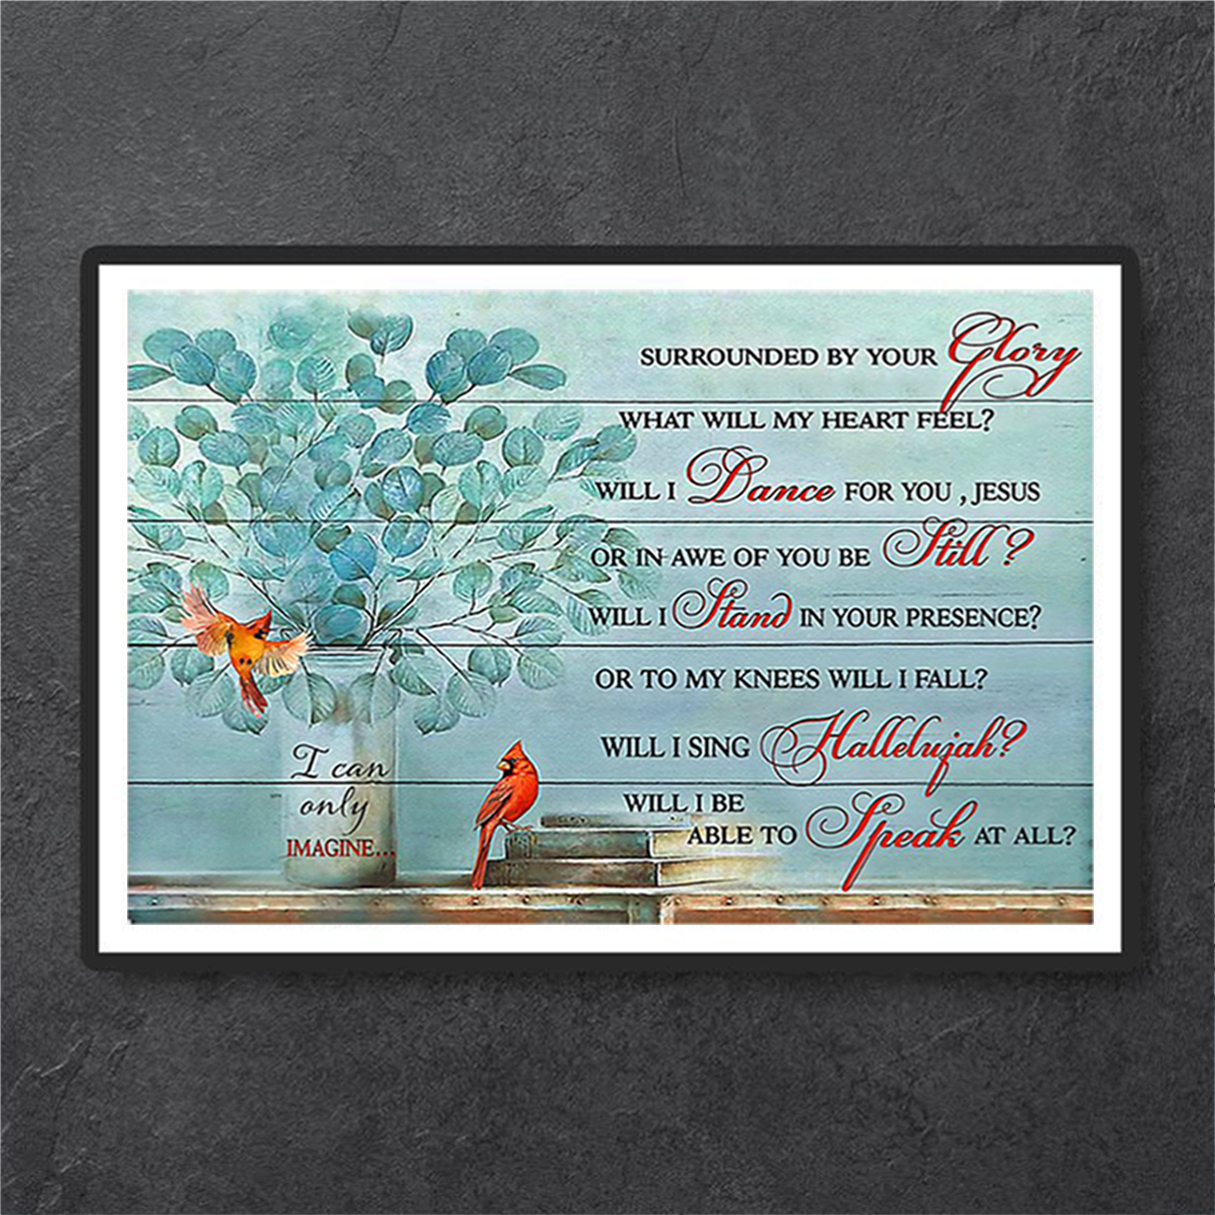 Cardinal Surrounded by your glory what will my heart feel poster A1